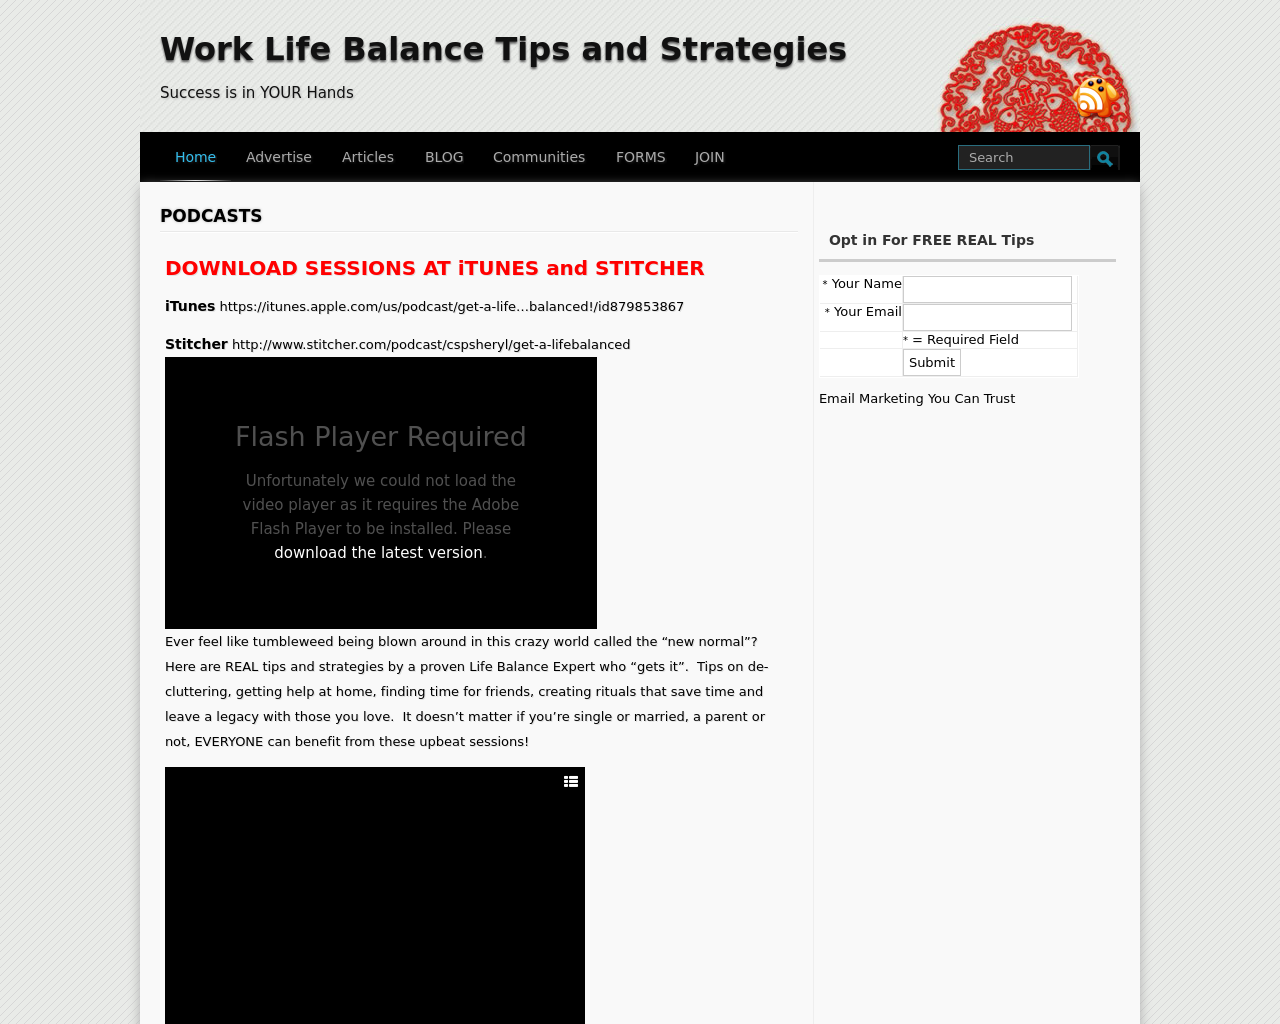 Work-Life-Balance-Tips-And-Strategies-Advertising-Reviews-Pricing